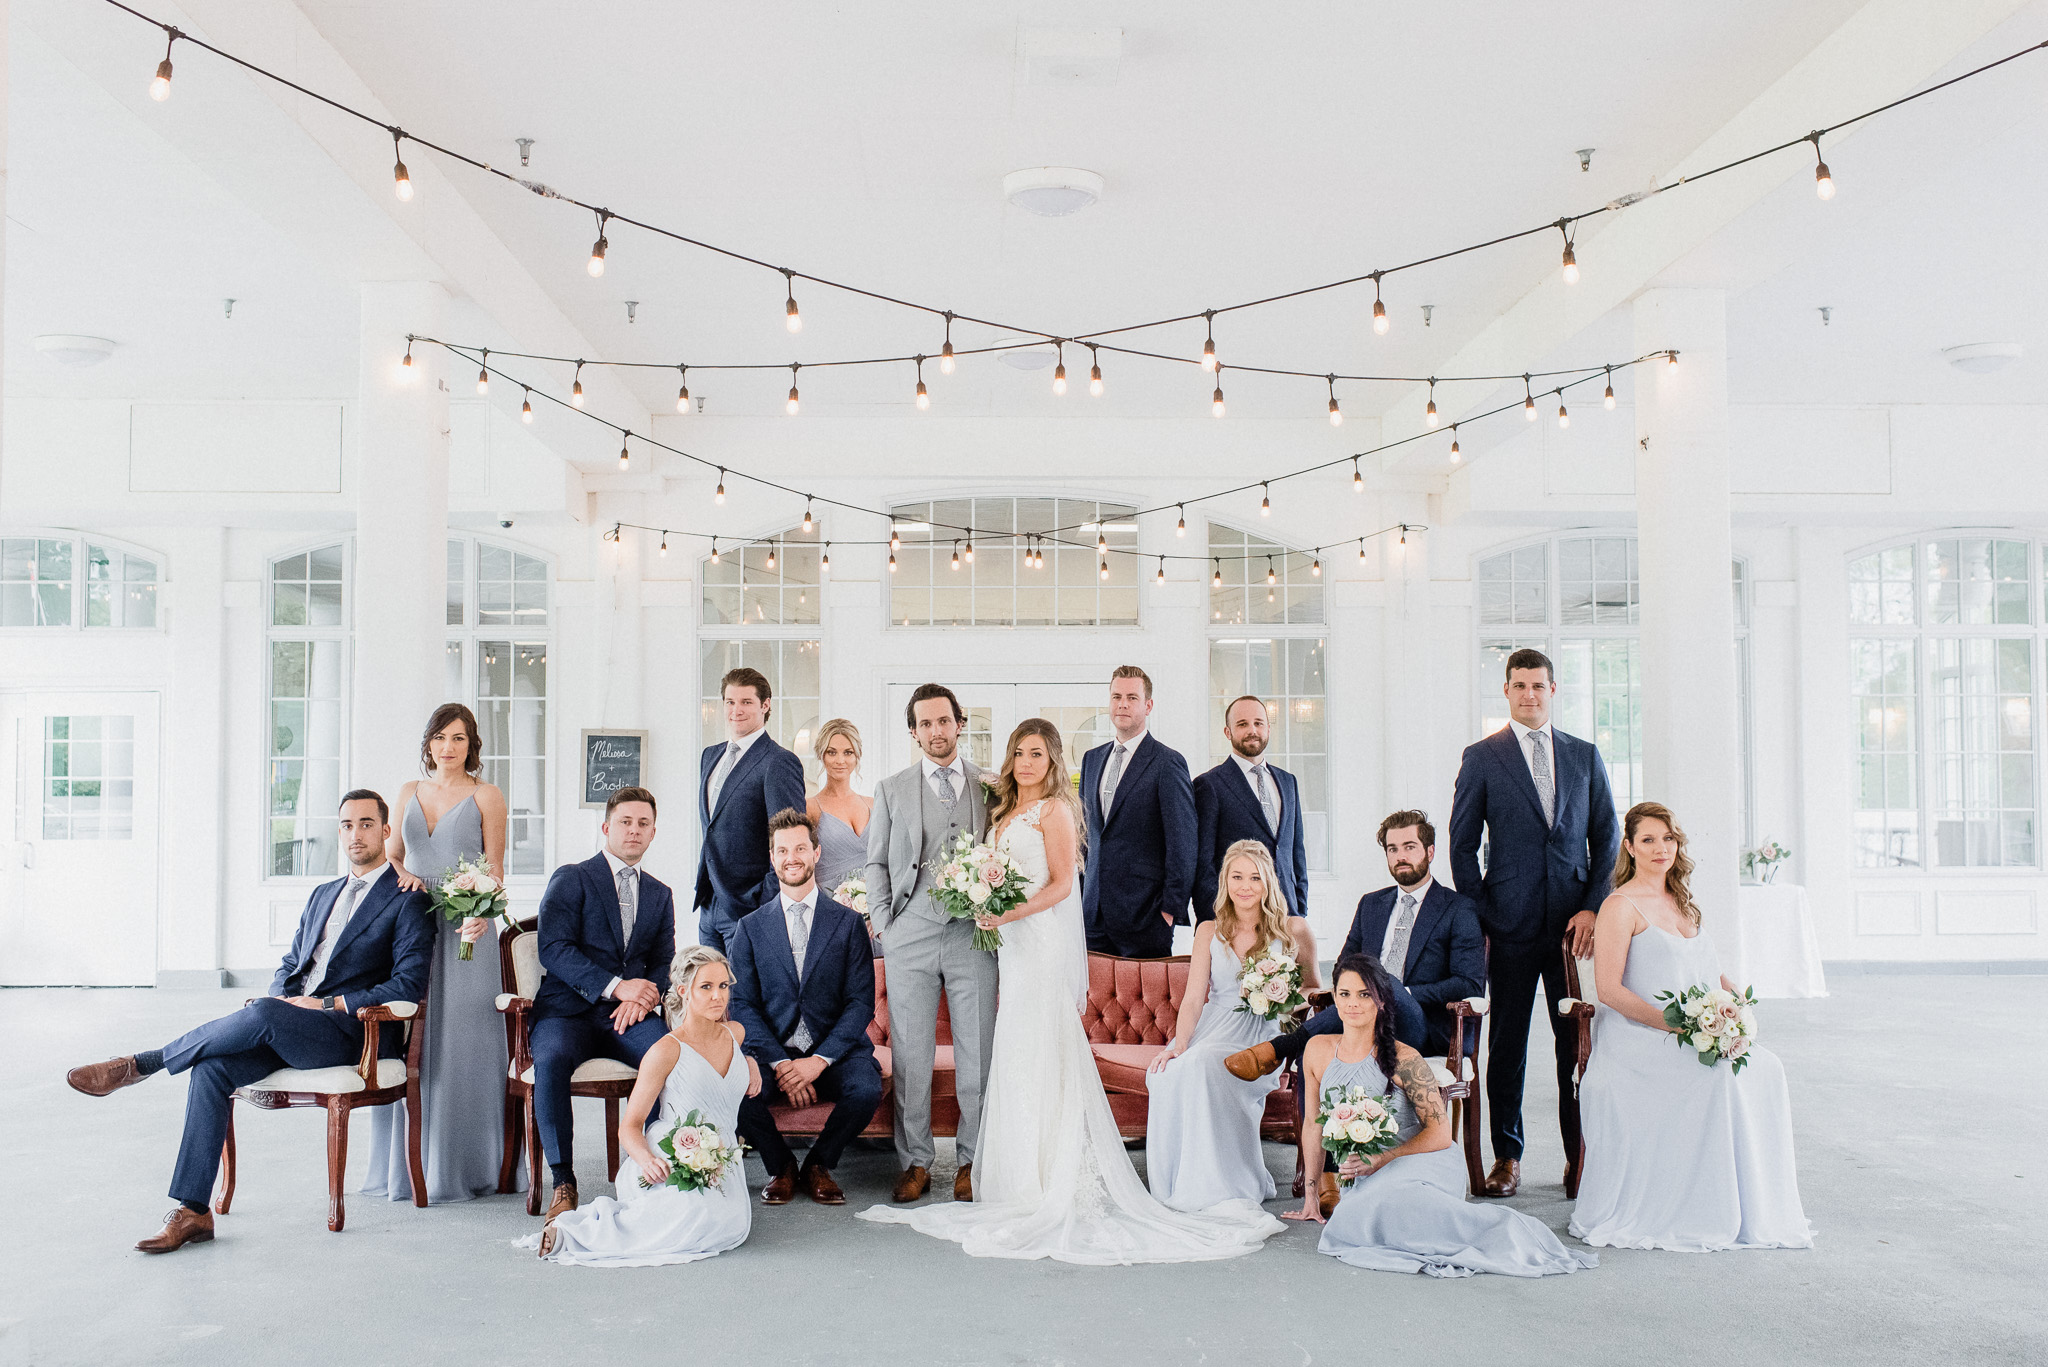 Vanity Fair Wedding Party Photo by Jenn Kavanagh Photography